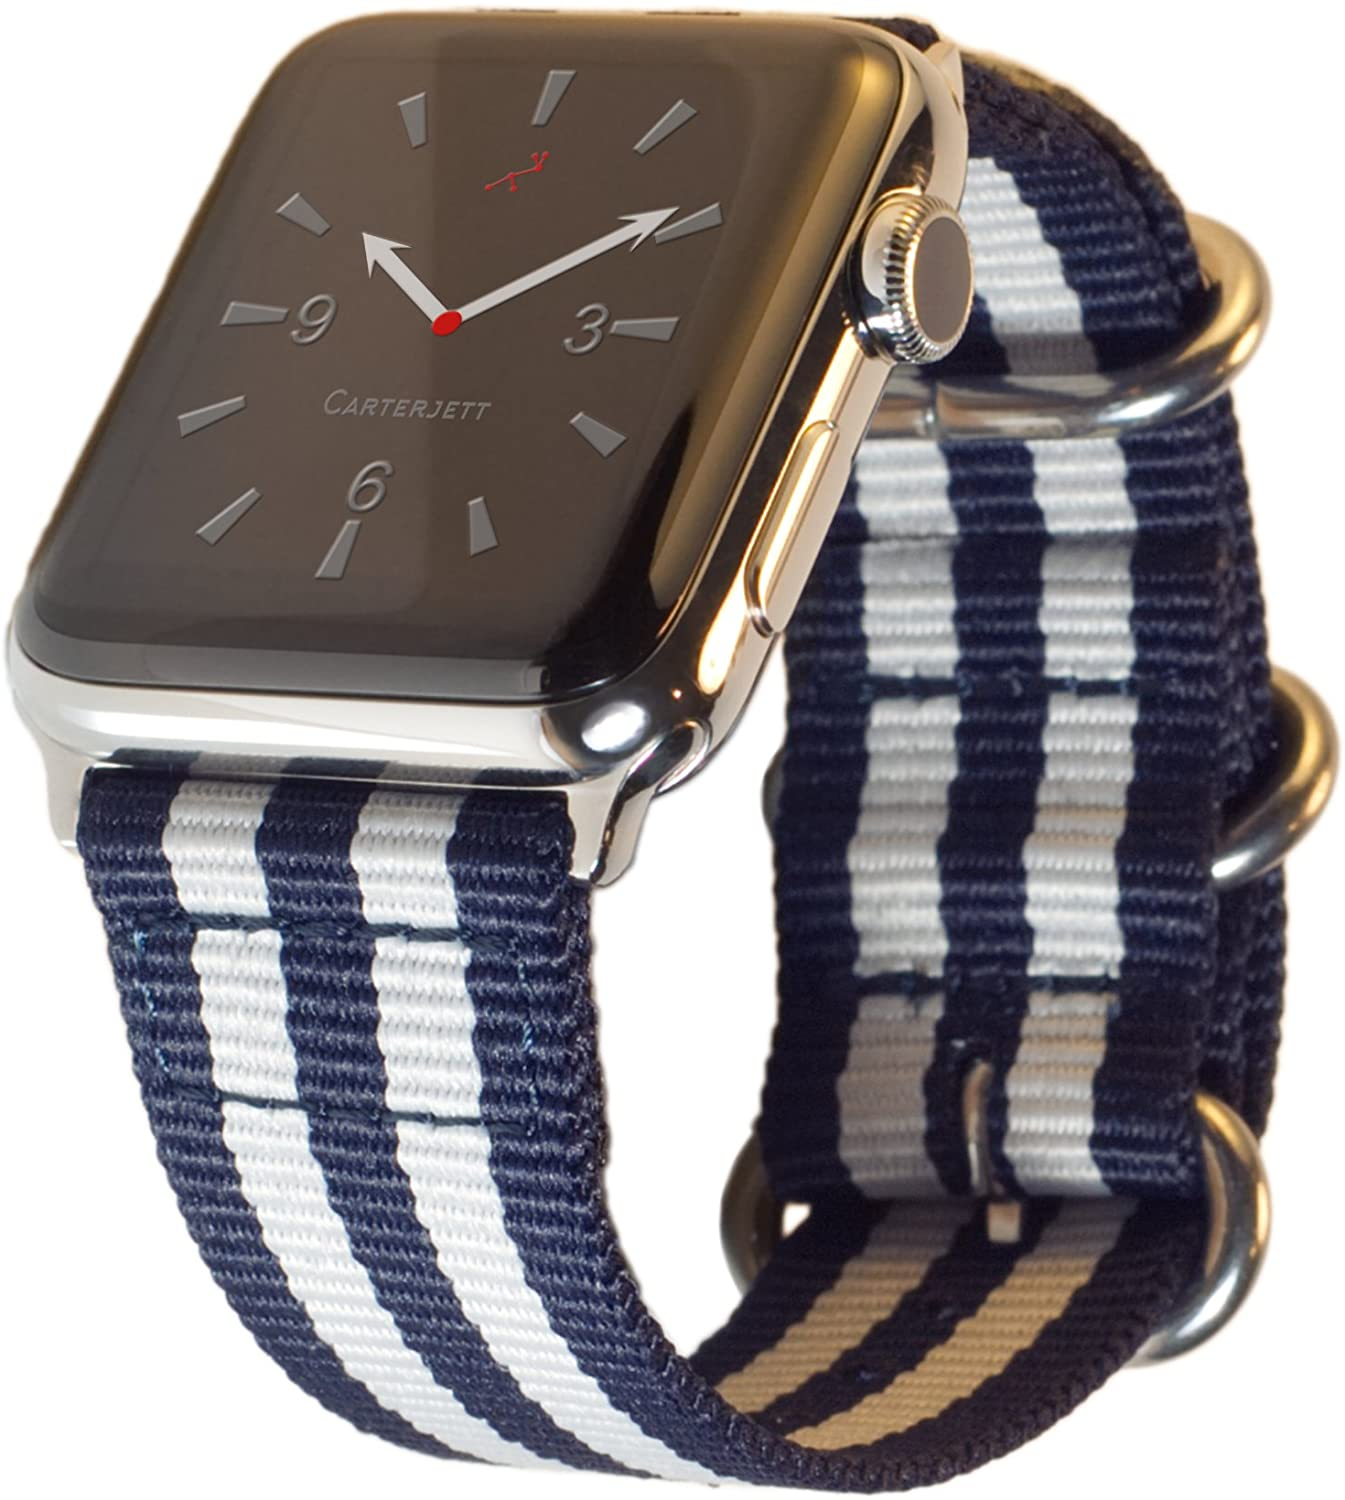 Carterjett Compatible with Apple Watch Band 42mm 44mm Women Men Replacement iWatch Bands Nylon Canvas Strap Steel Hardware Edition Sport for Series 5 4 3 2 1 (42 44 S/M/L Blue/White)